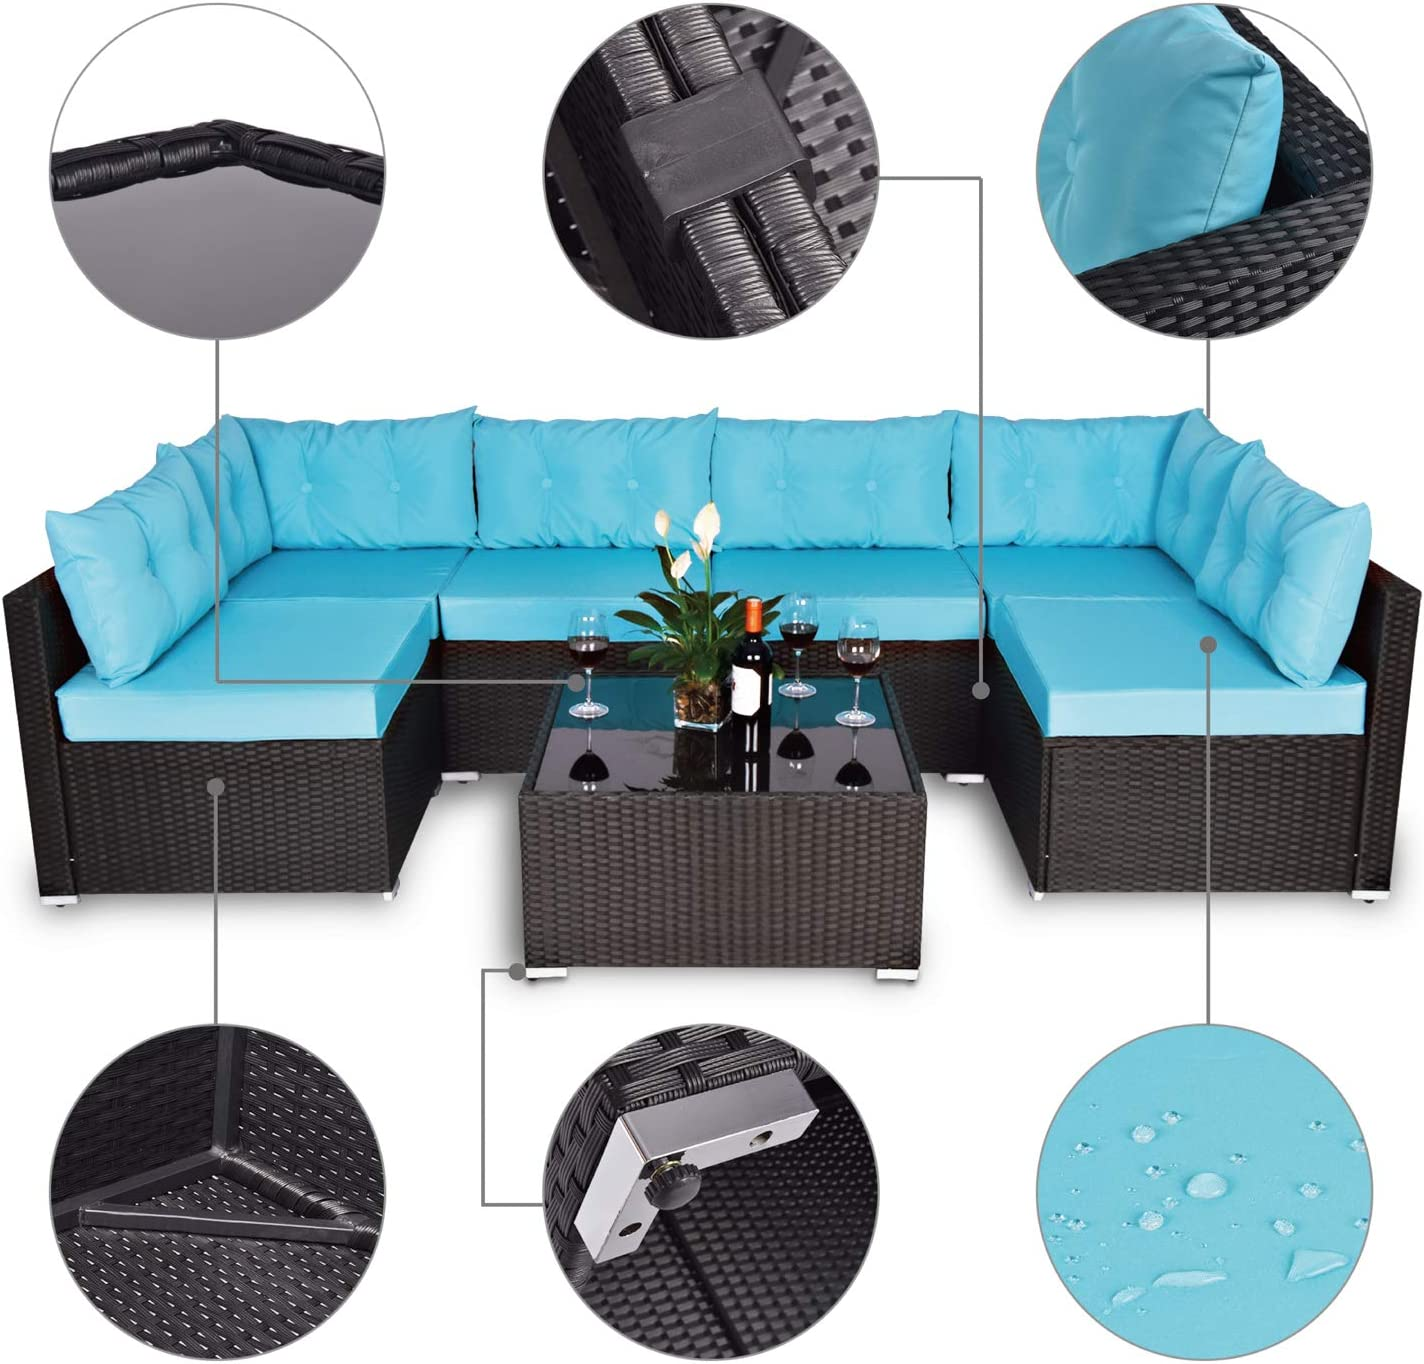 Amooly 3 Pieces Patio PE Rattan Sofa Set Outdoor Sectional Furniture Wicker Chair Conversation Set with Cushions